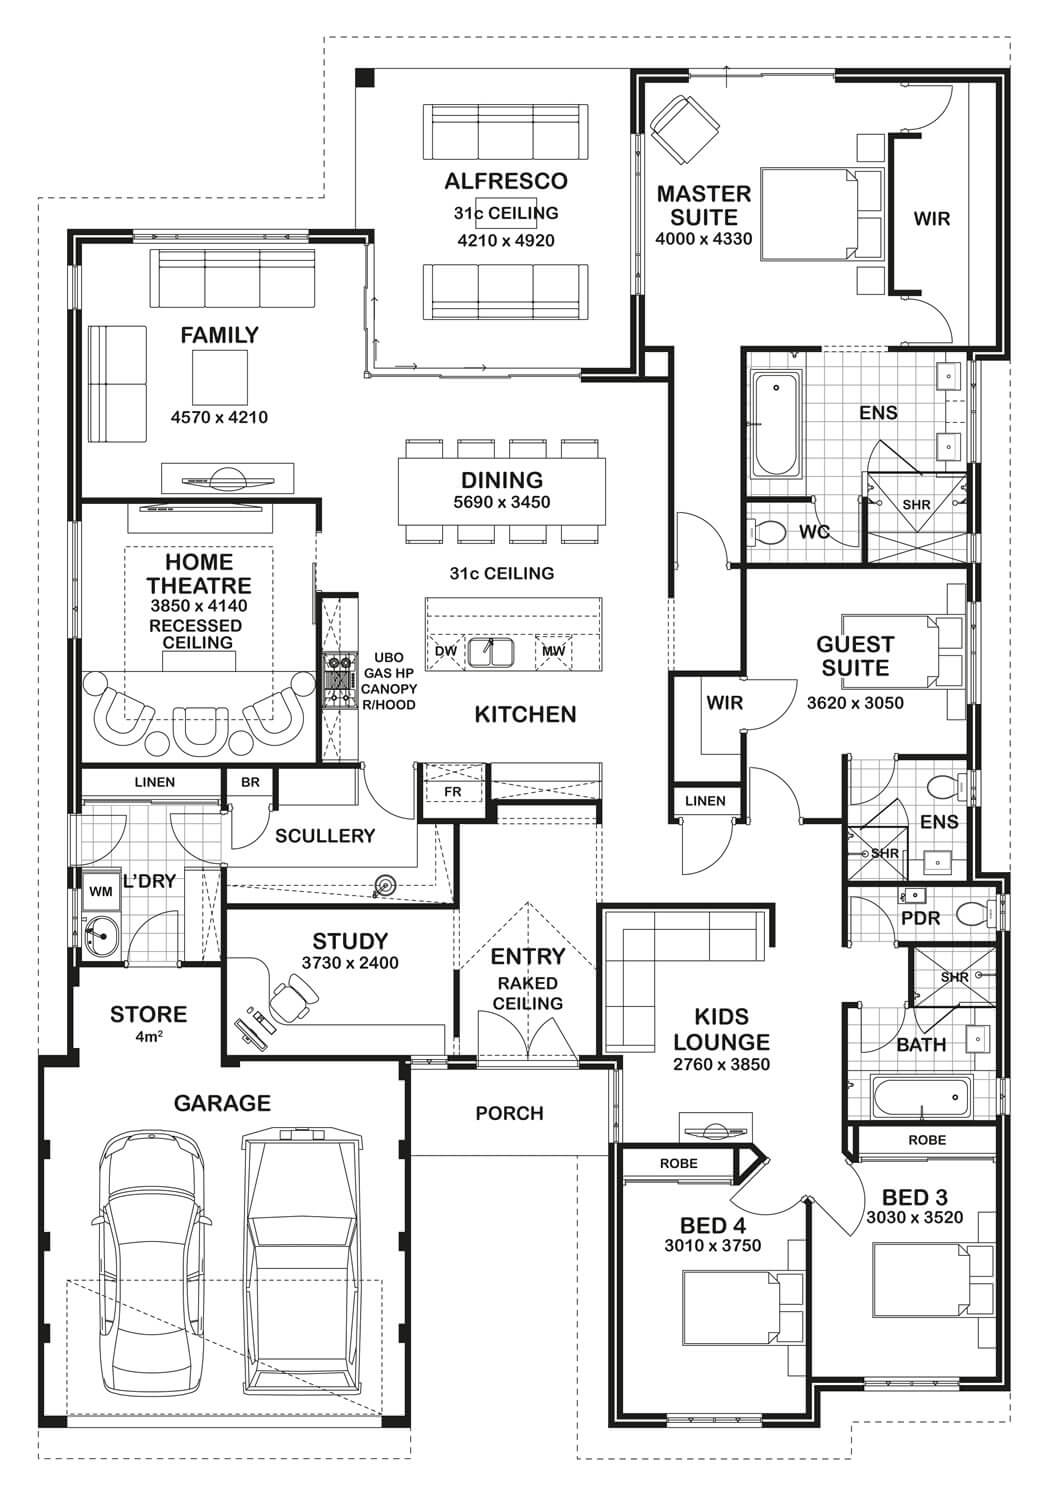 Floor plan friday storage laundry scullery Floorplan com